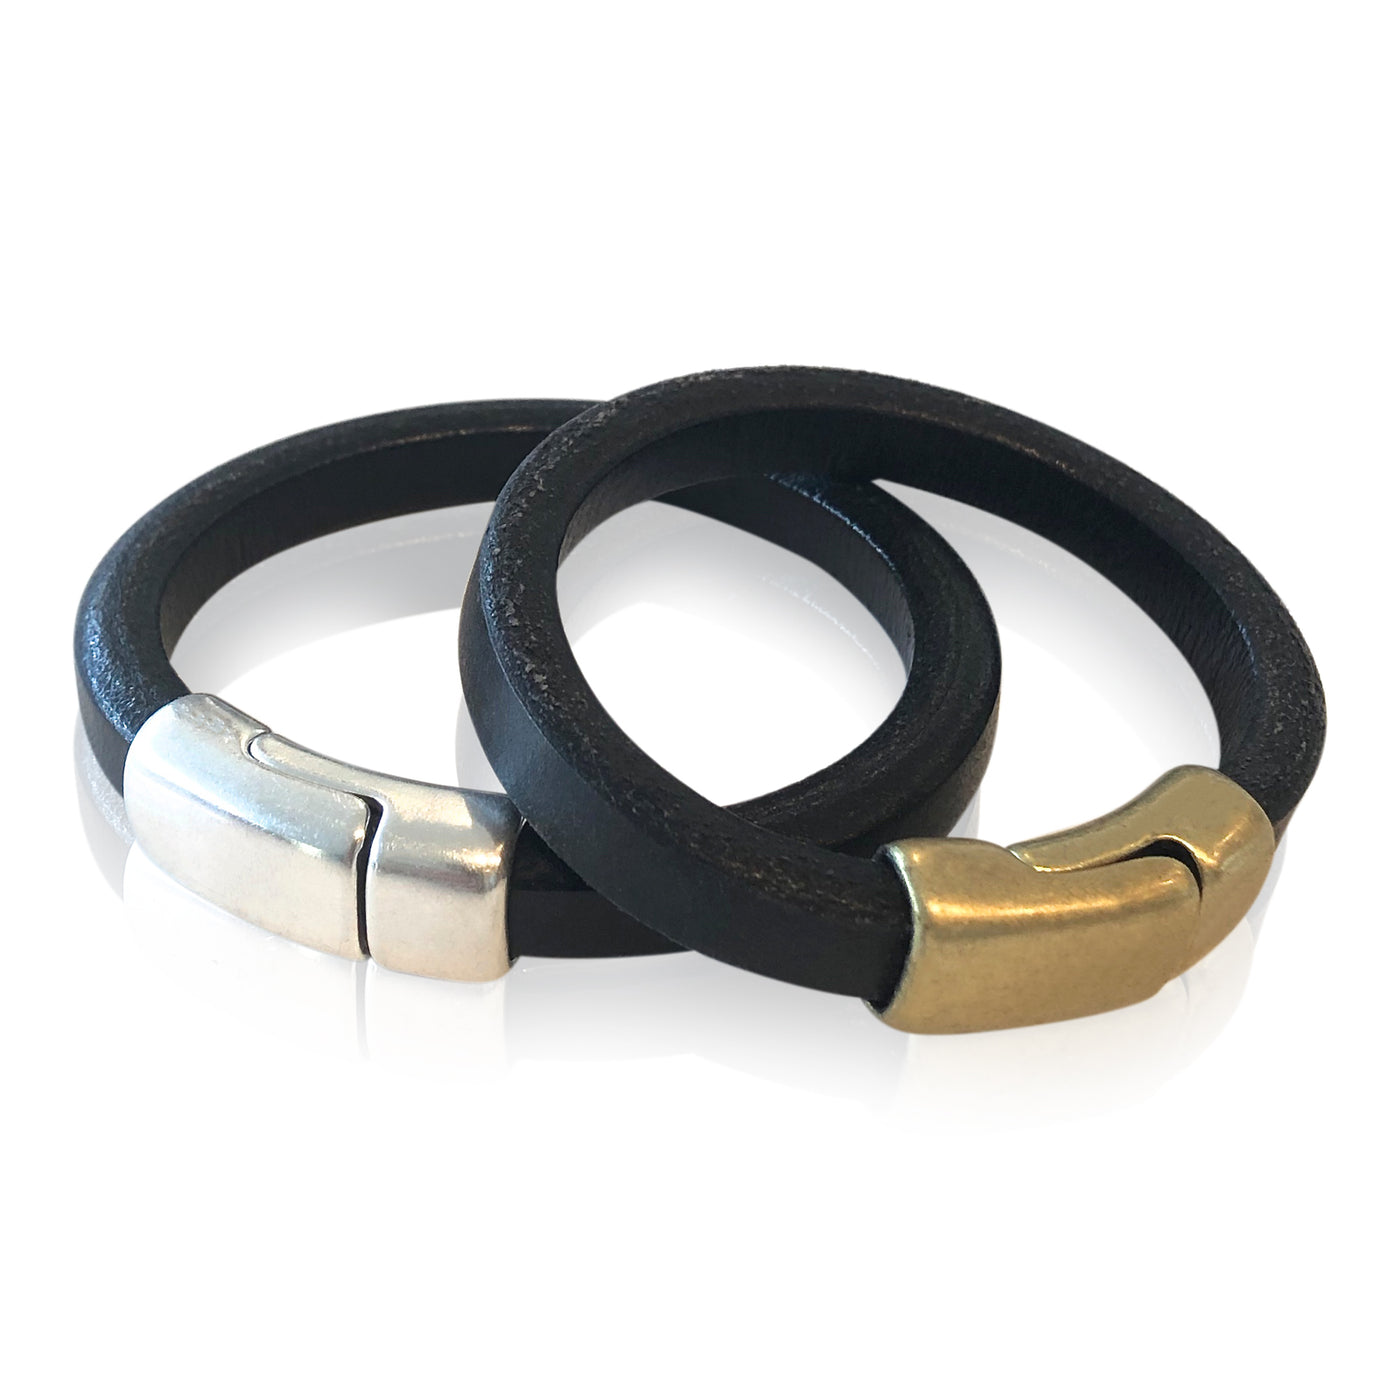 BR1 BK - Black Leather Bracelet with Round Magnetic Clasp